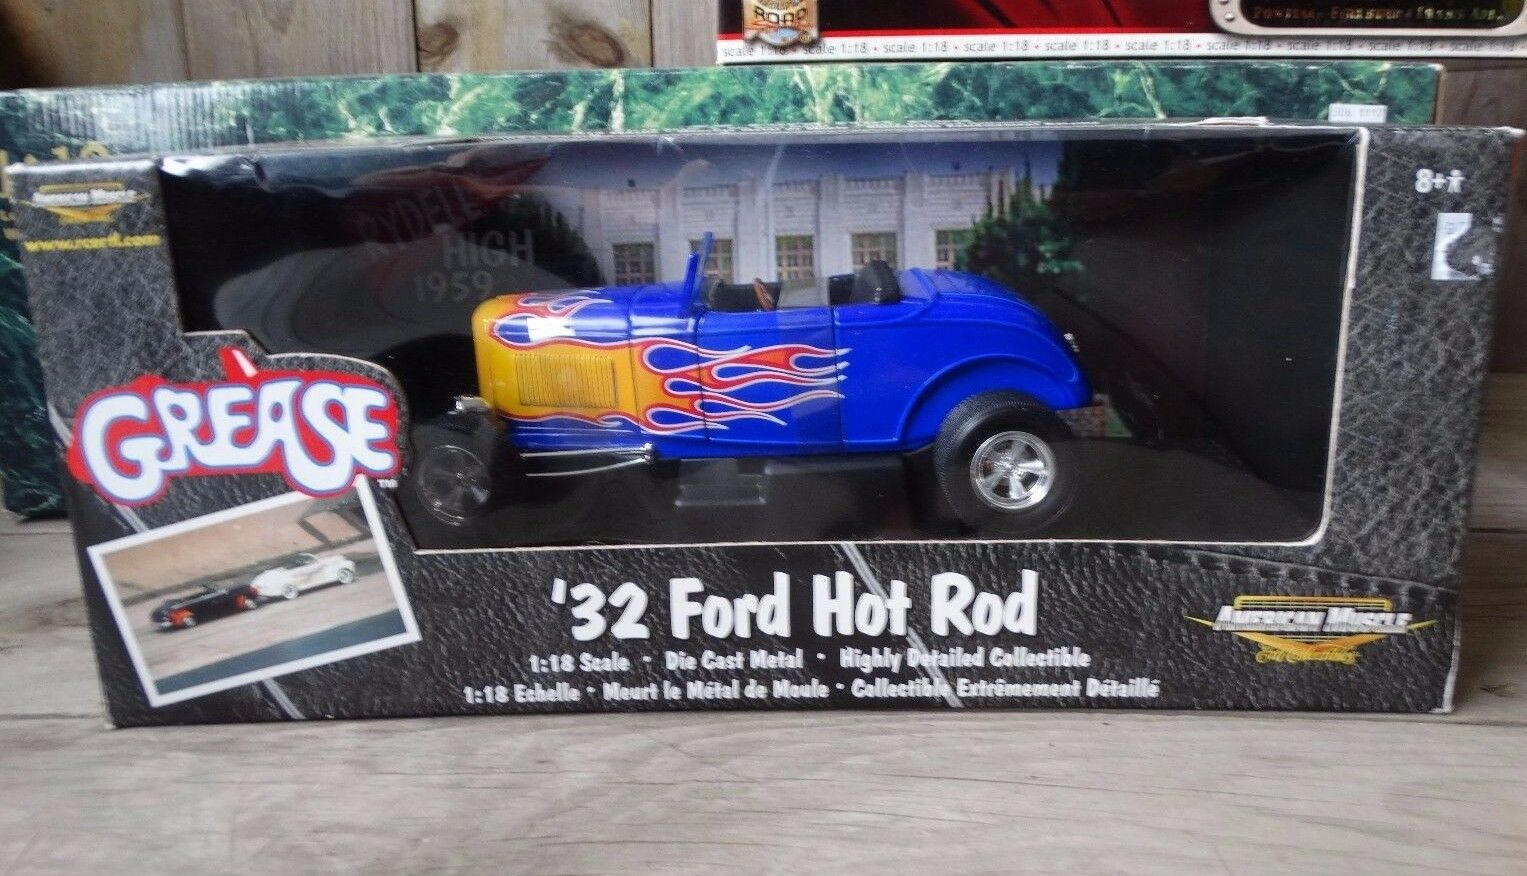 ERTL American Muscle Grease 1932 Ford Hot Rod Roadster 1 18 échelle moulé sous pression 32 voiture